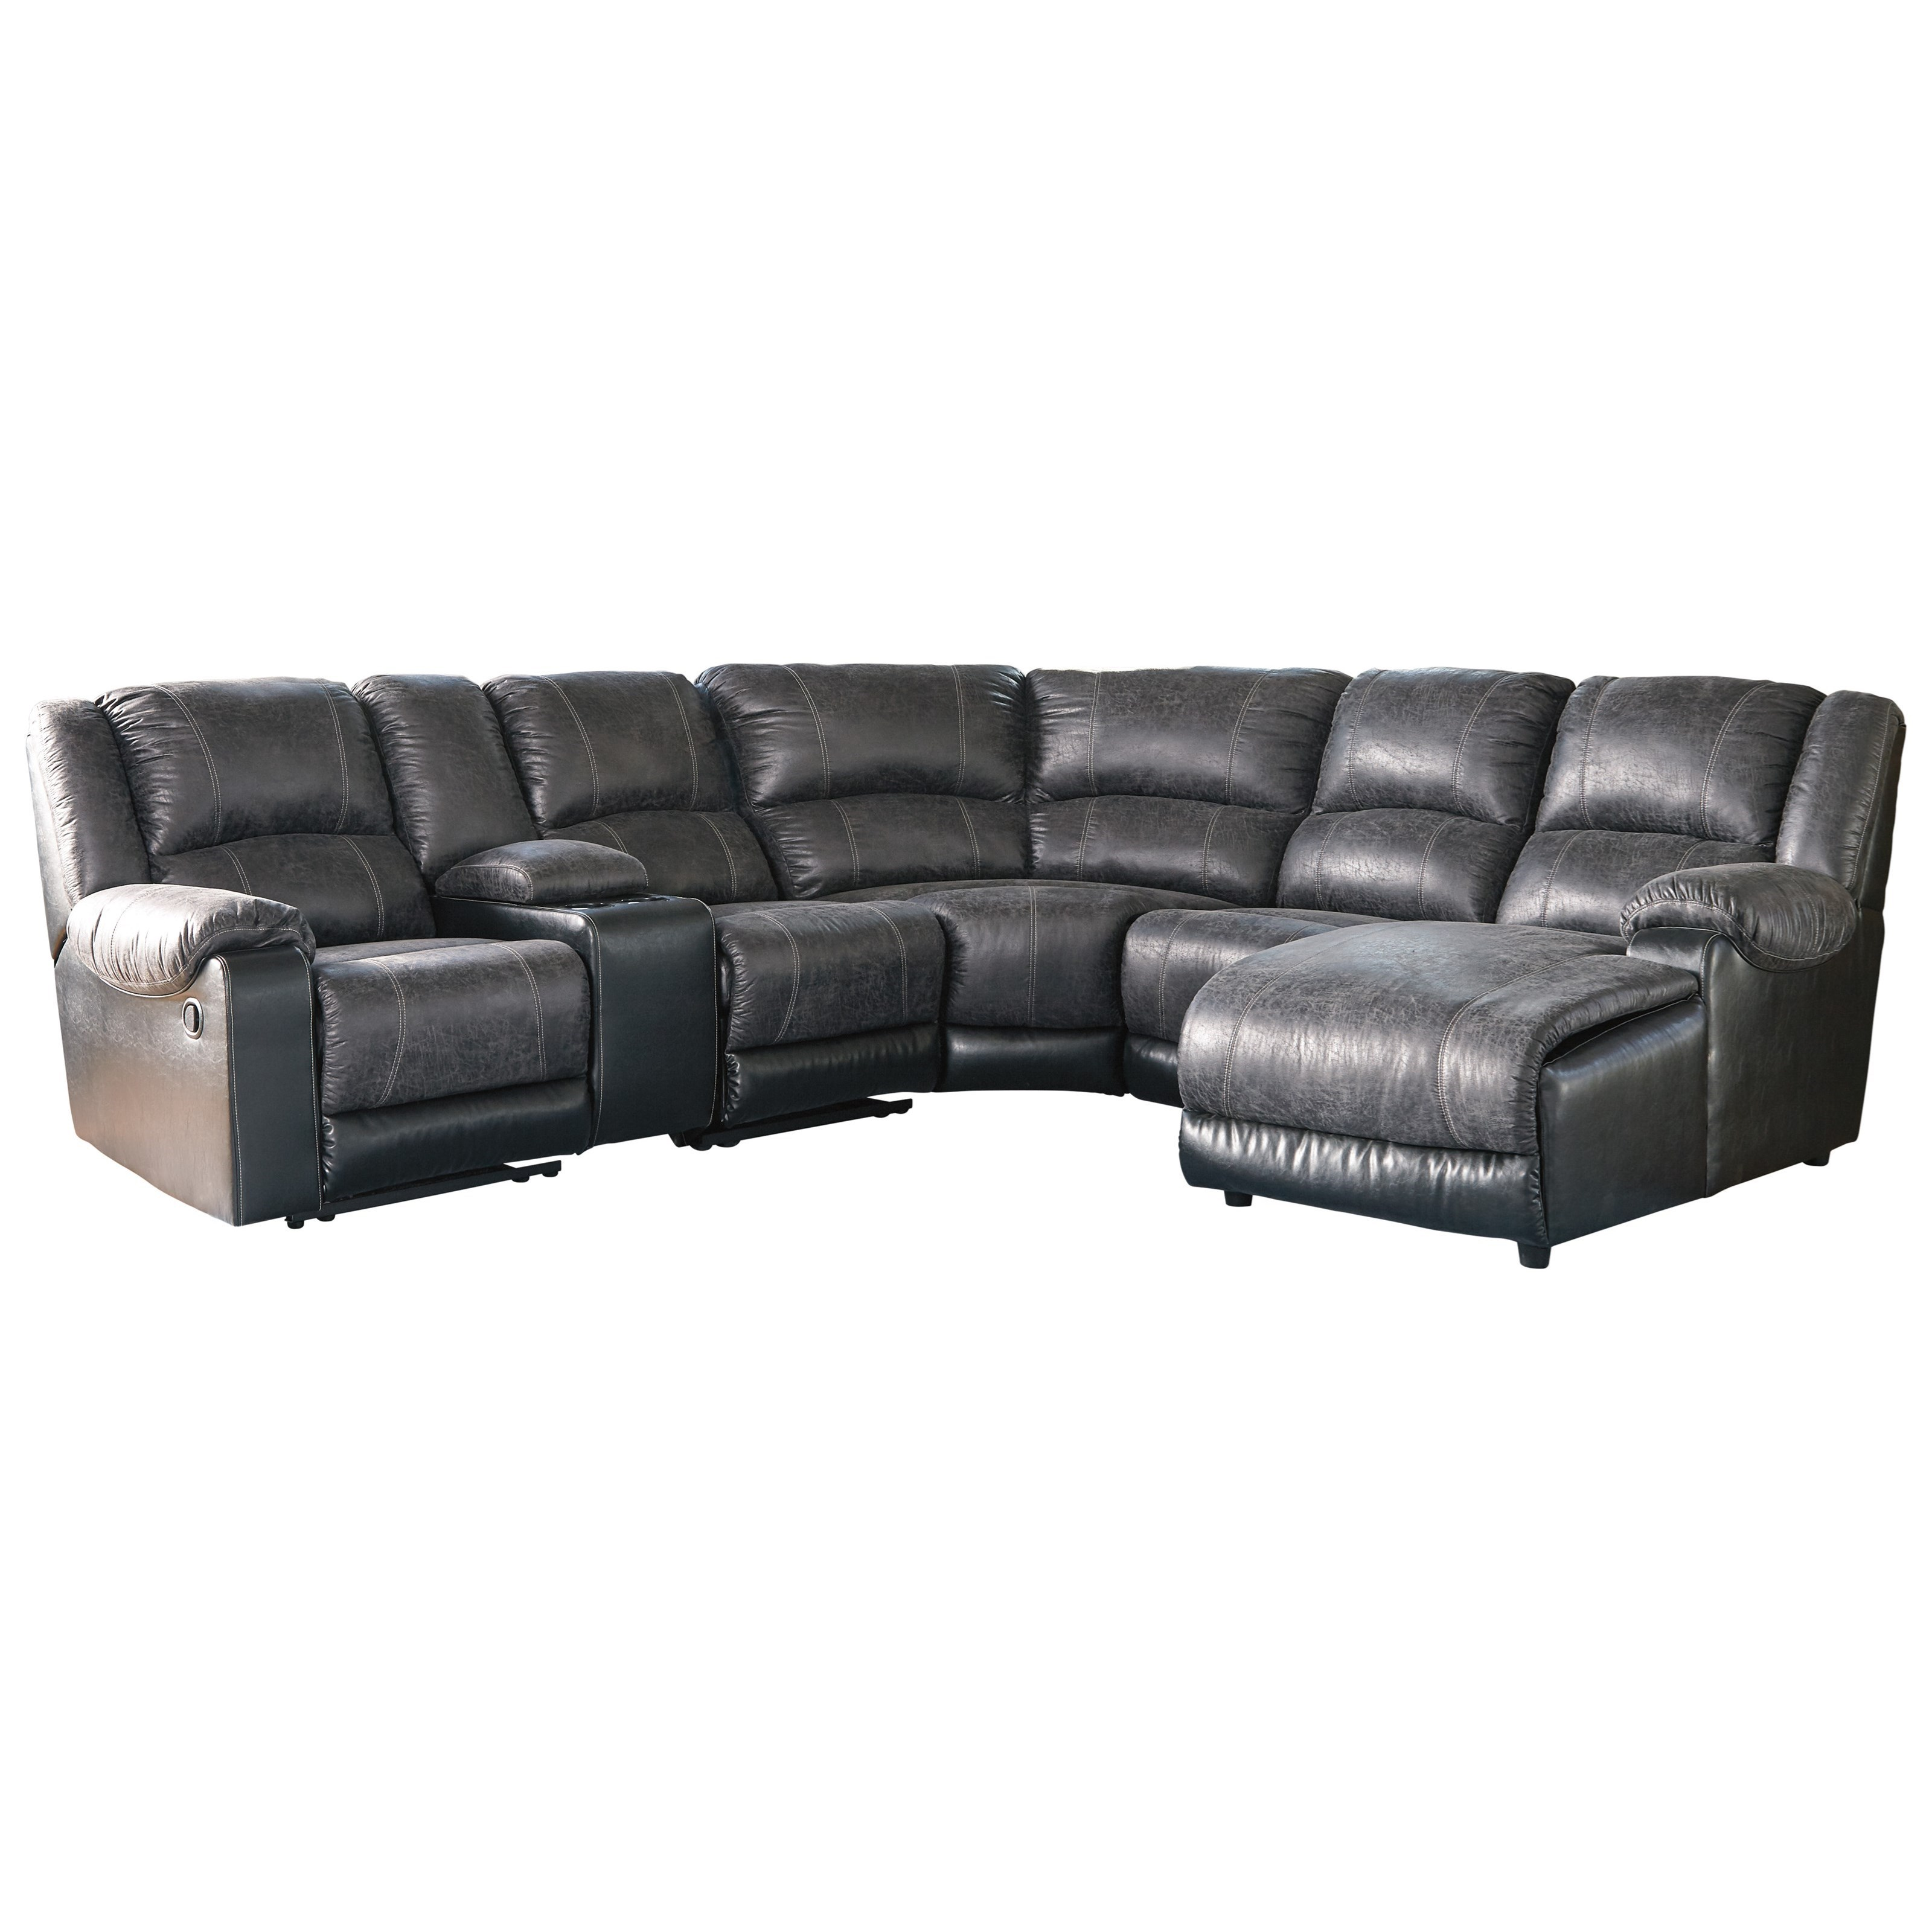 Nantahala Reclining Sectional with Chaise & Console by Signature Design by Ashley at Northeast Factory Direct